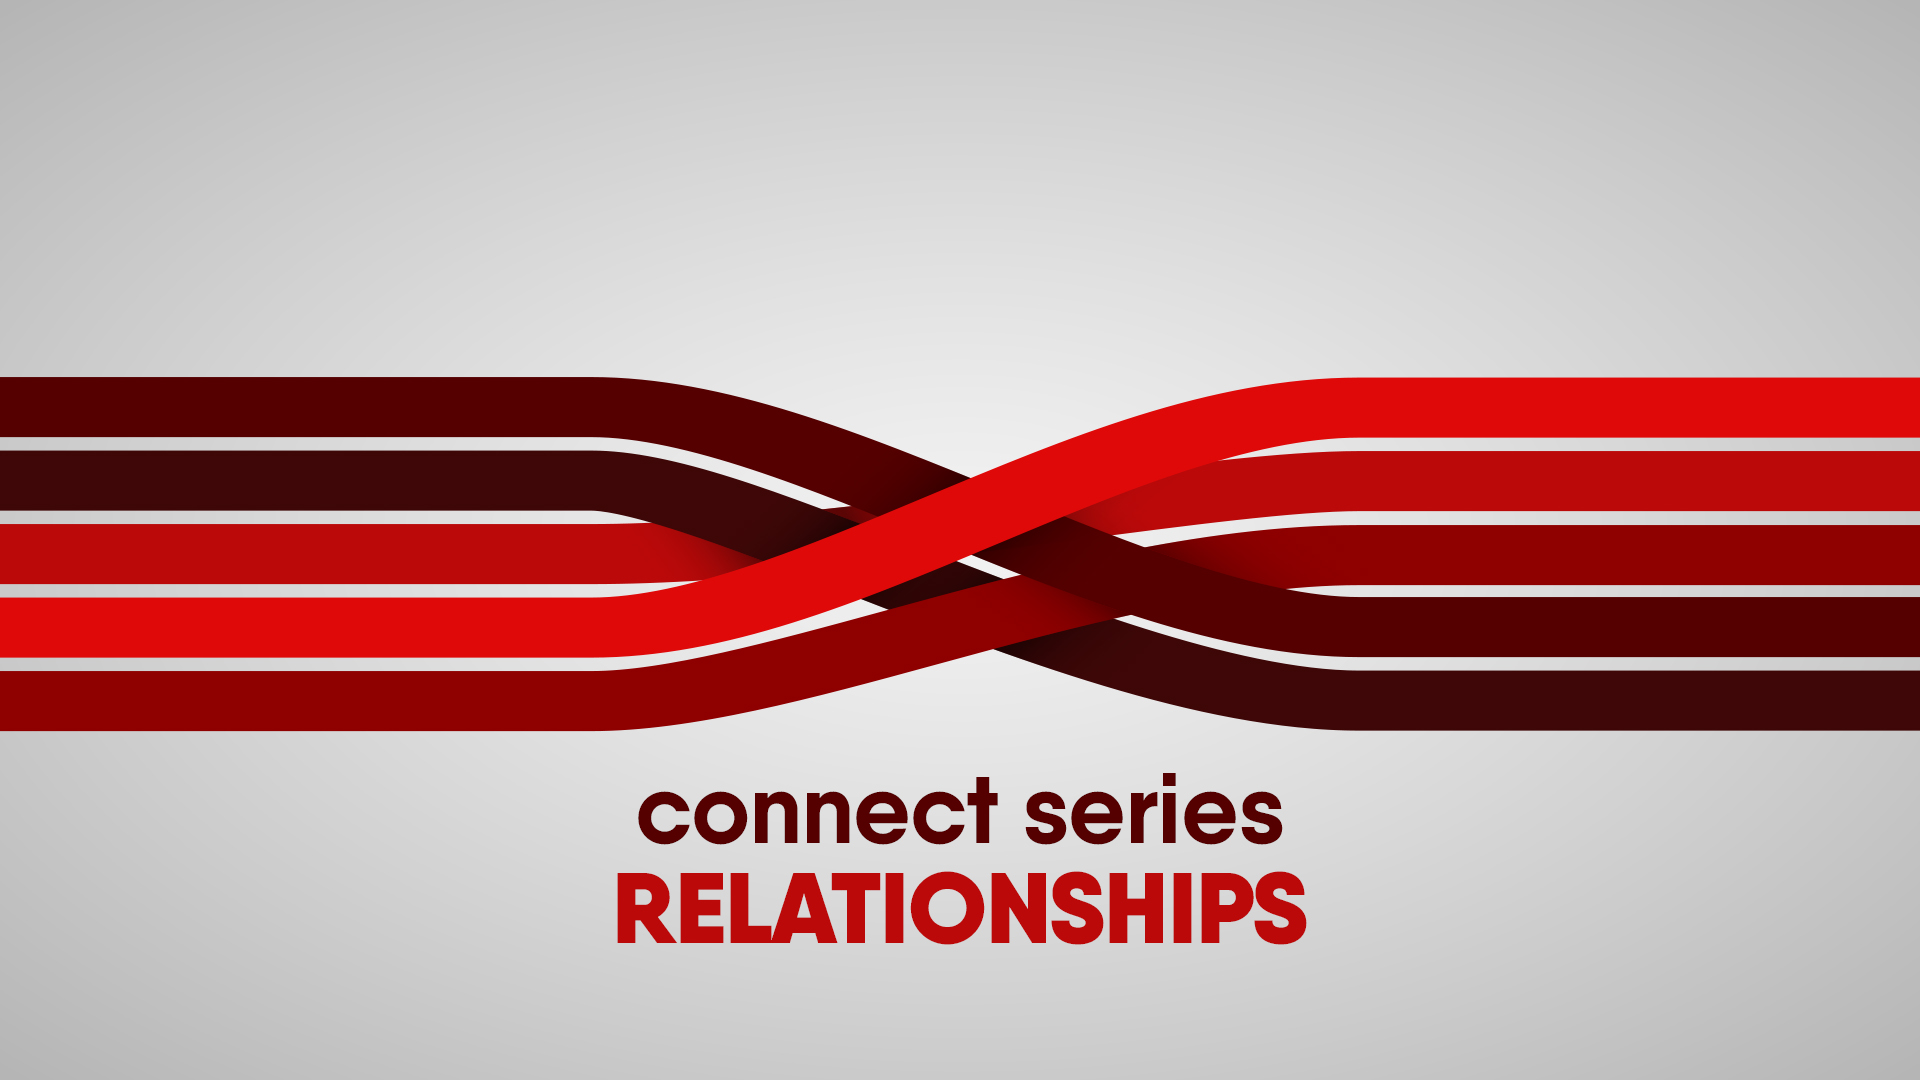 Connect Series - Relationship